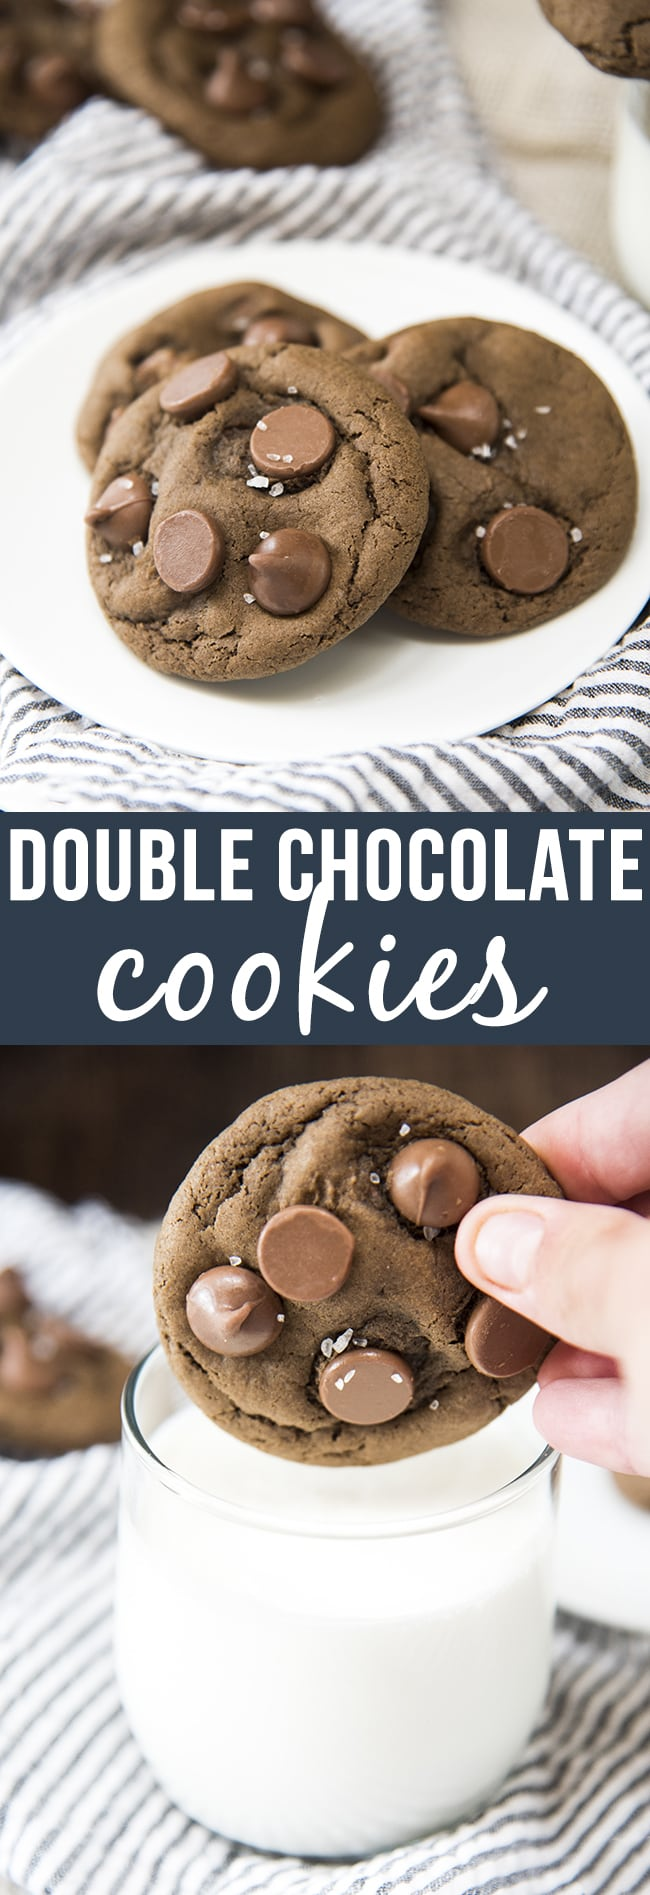 These are the best double chocolate cookies ever. They are thick and chewy stuffed full of chocolate for the best rich chocolatey cookies!